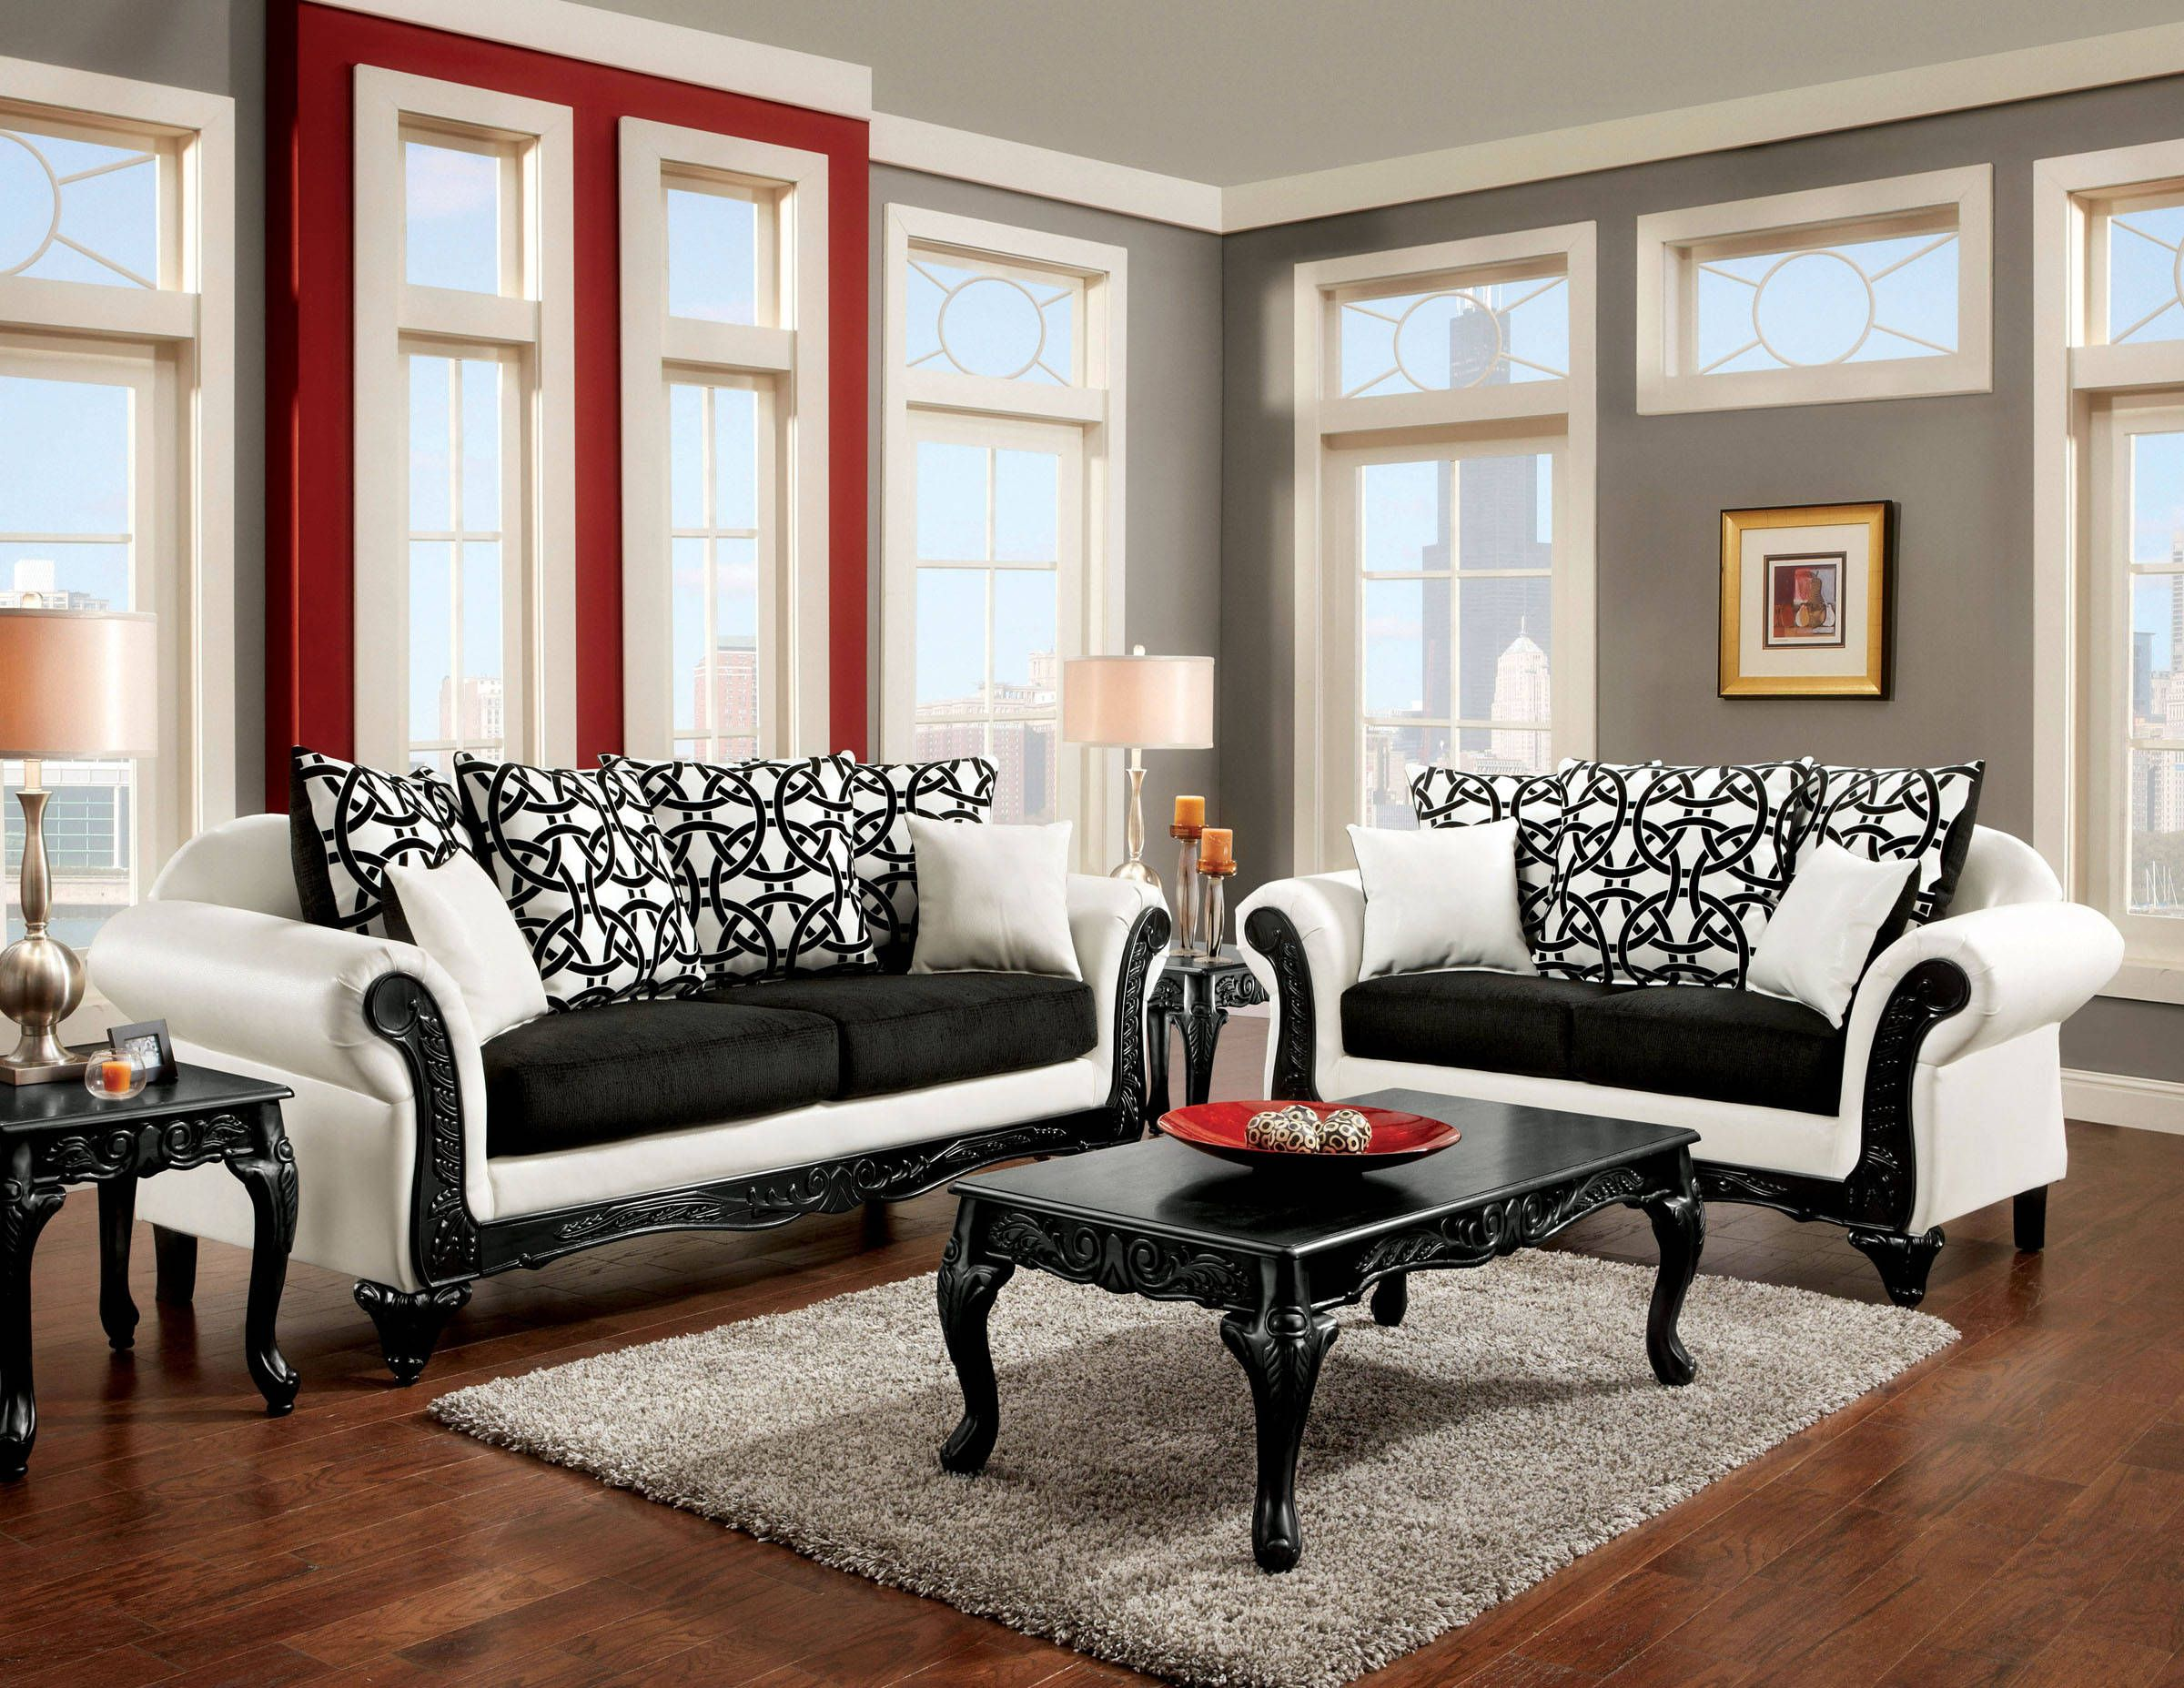 Furniture Of America Dolphy Sofa Sofa And Loveseat Set White Sofa Set Black And White Sofa